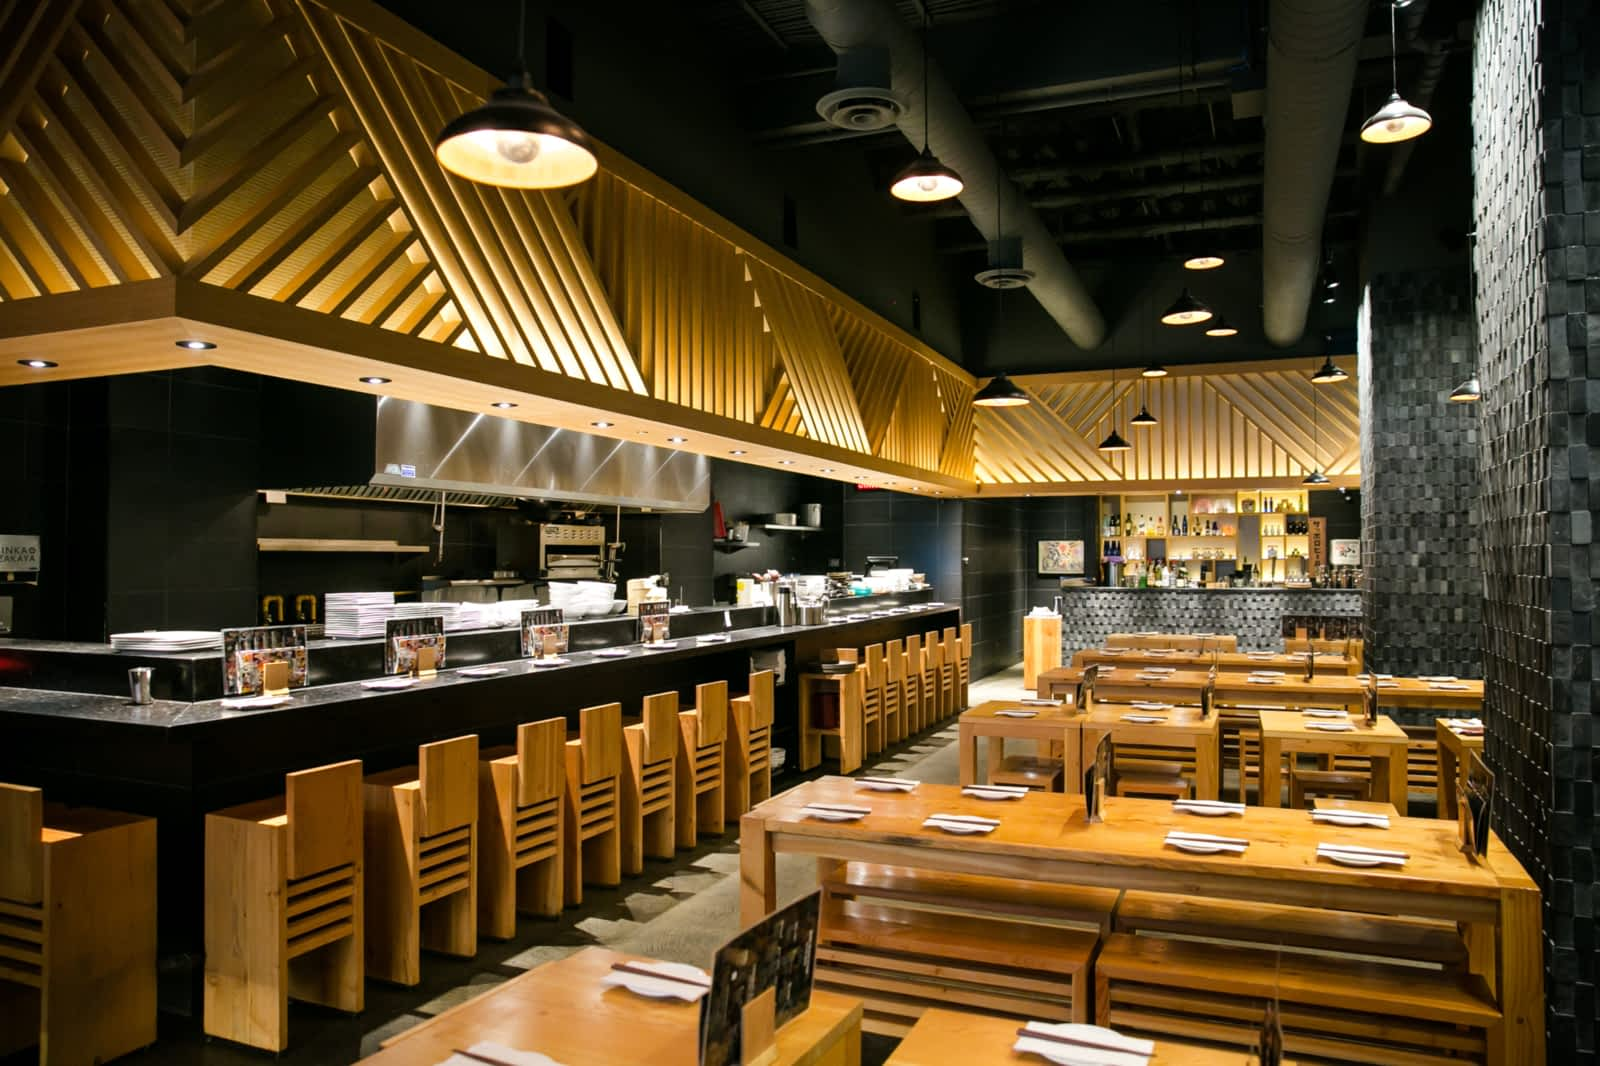 Modern Japanese restaurant featuring bar seating and an open kitchen as well as dining tables